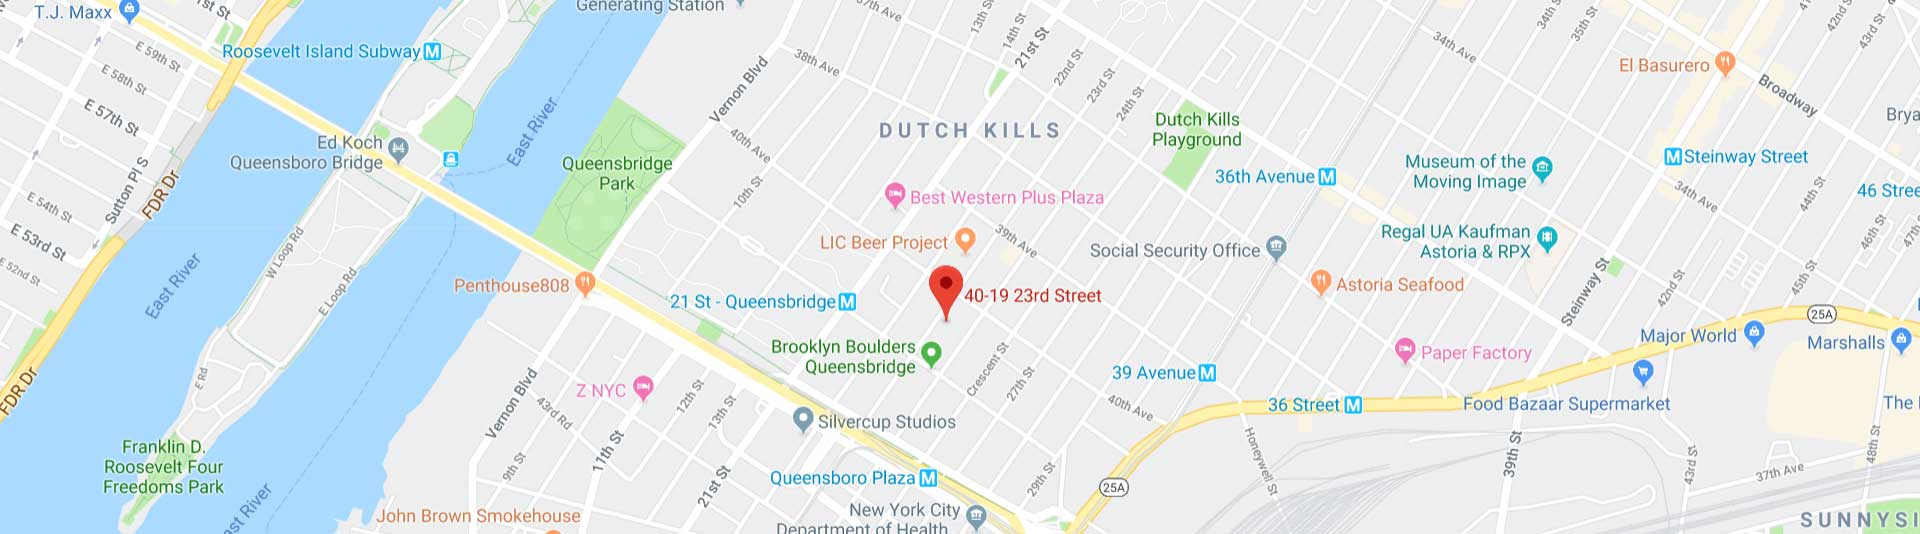 Adria Motors Auto Repair, located in Long Island City NY 11101, is you local BMW, Audi, Mercedes, Porsche and Volkswagen Repair & Service Specialist.